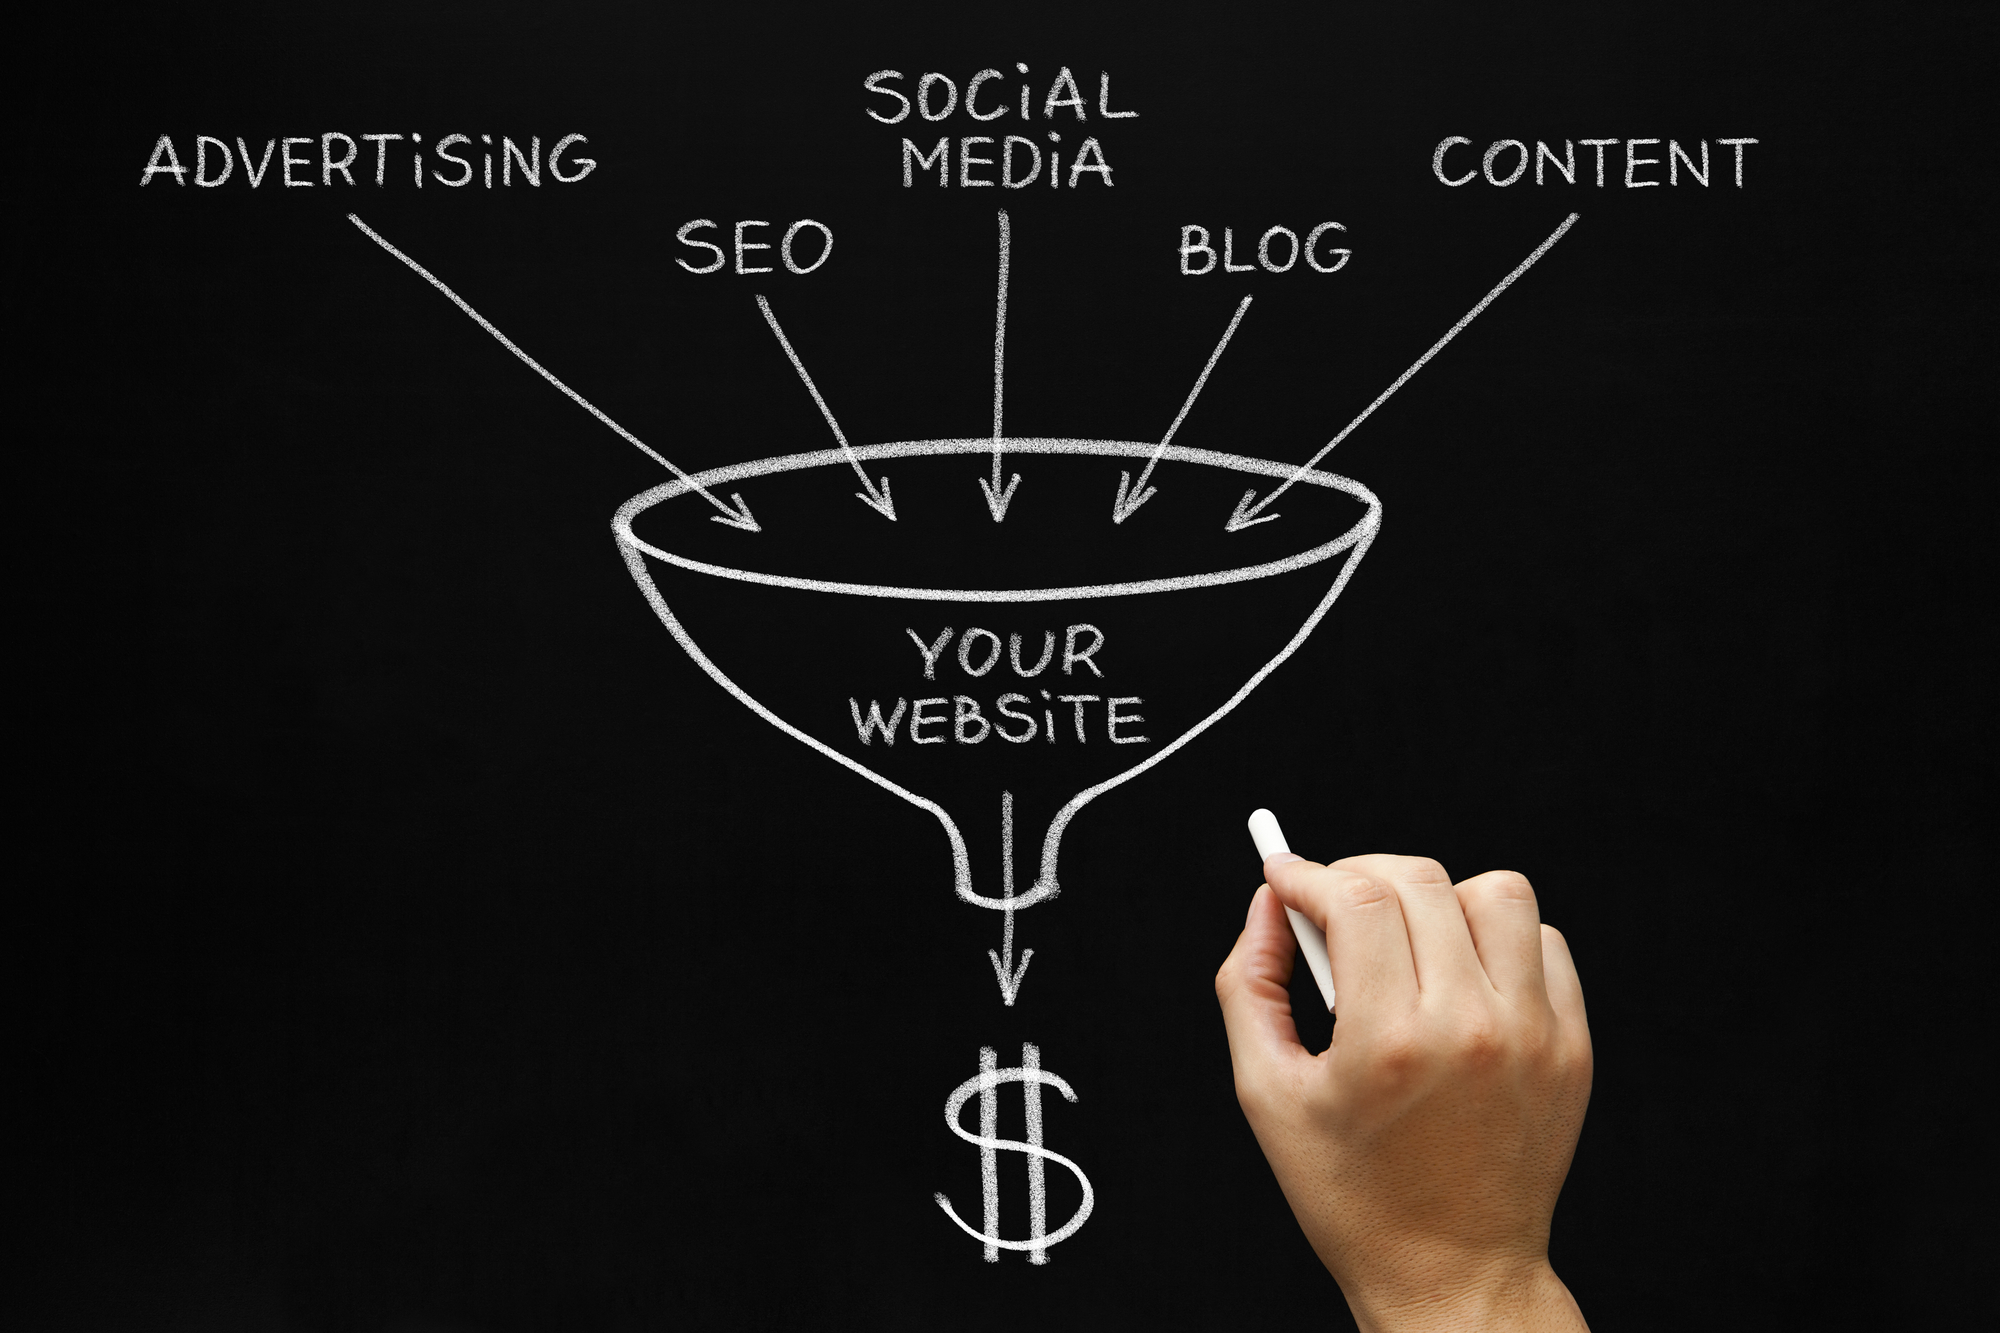 5 Ways You Should Be Marketing Your Website by 2020